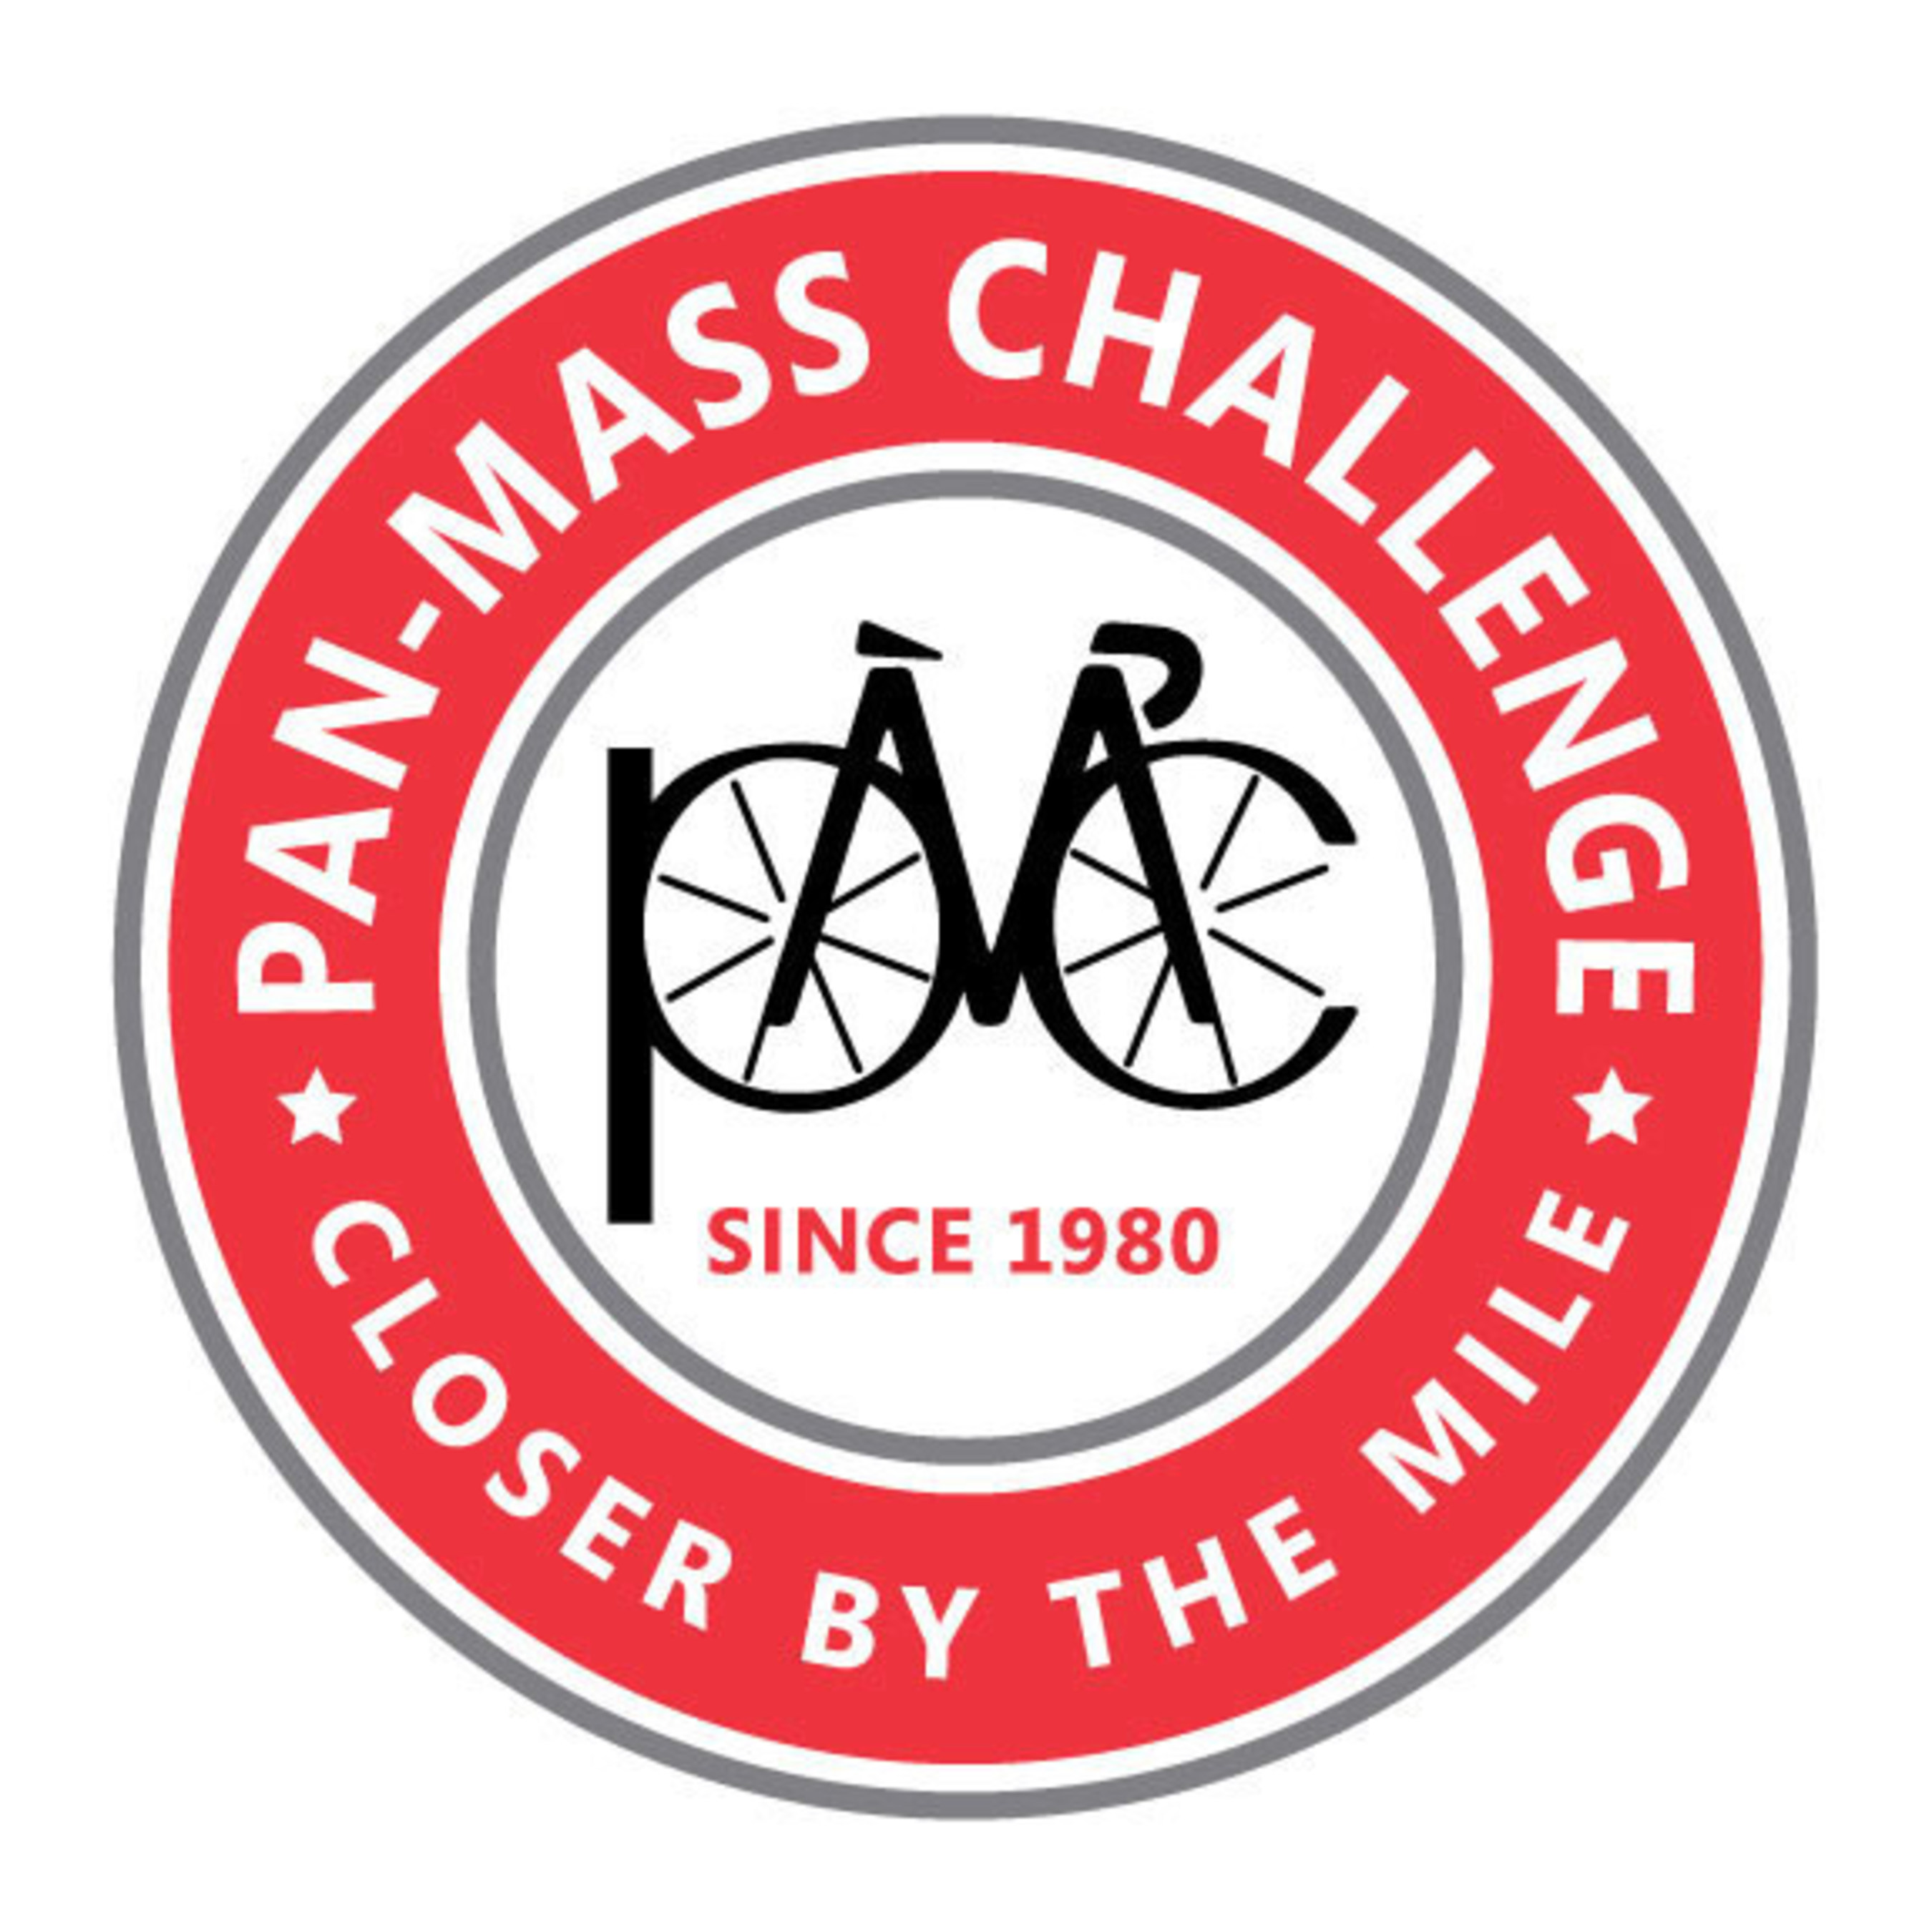 Pan-Mass Challenge announces record-setting gift to Dana-Farber Cancer Institute, bringing the 35 year total to $455 million